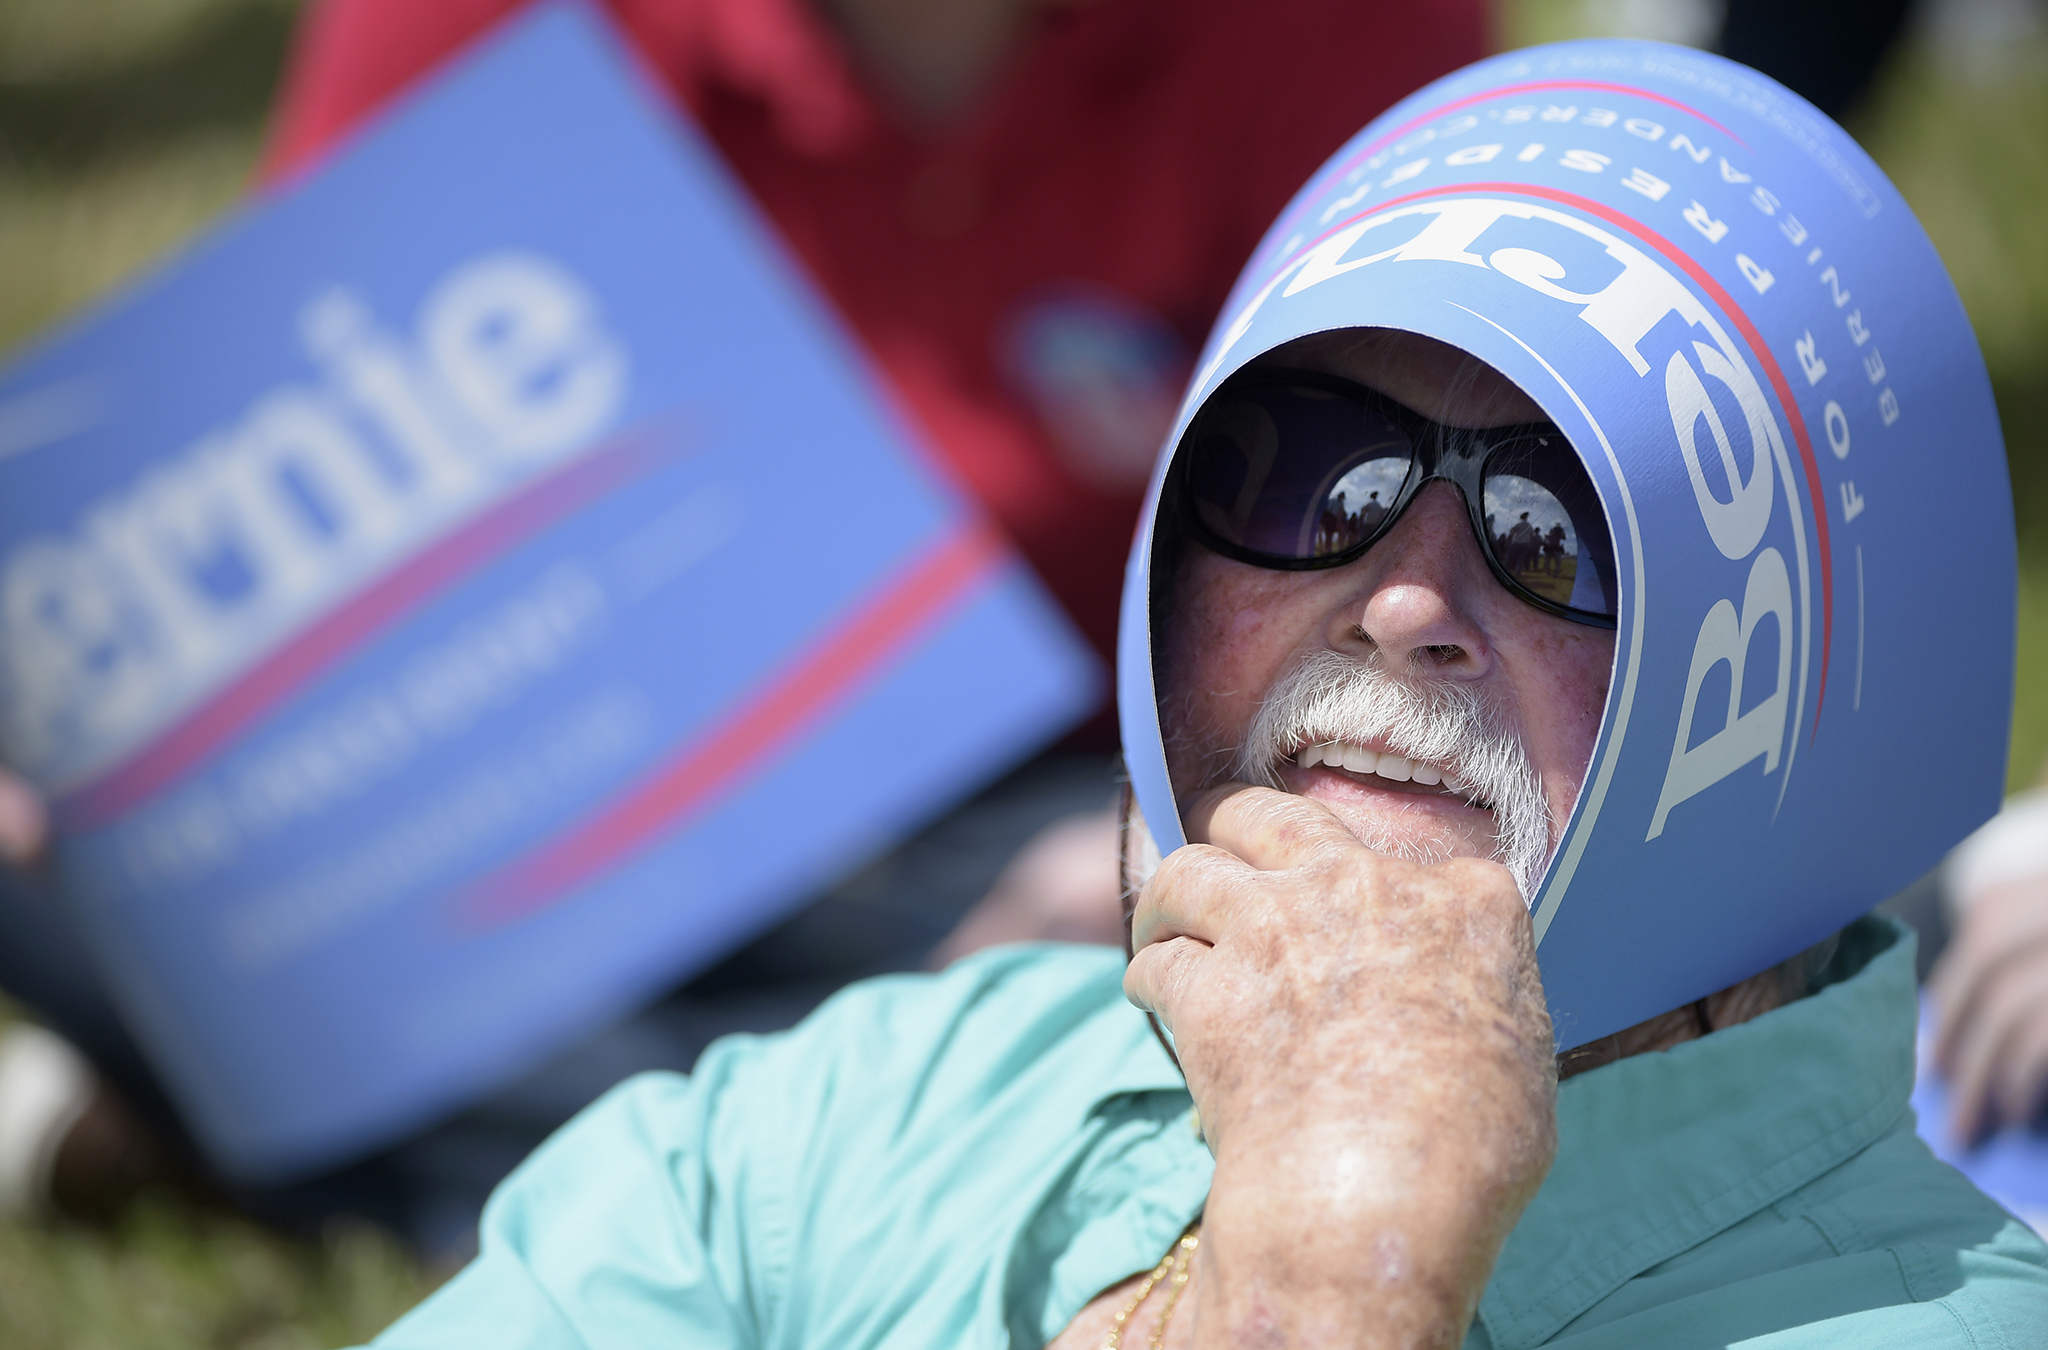 Tim Ferris shades himself from the sun while waiting in line to attend a campaign rally with Democratic presidential candidate, Sen. Bernie Sanders, in Kissimmee, Florida, USA